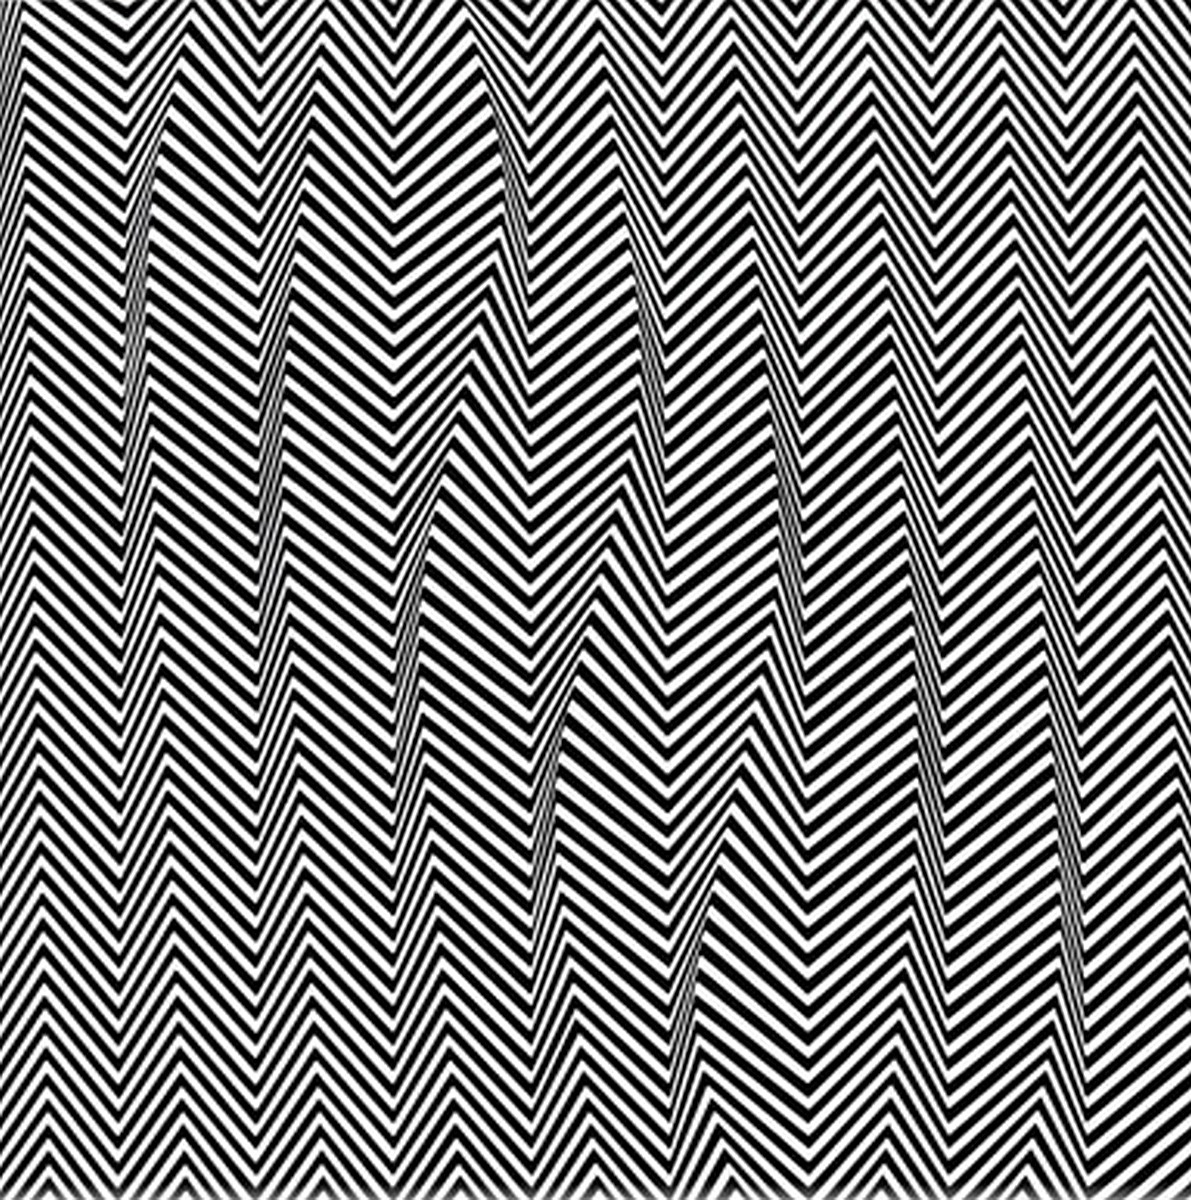 Bridget Riley - Descending (1965)